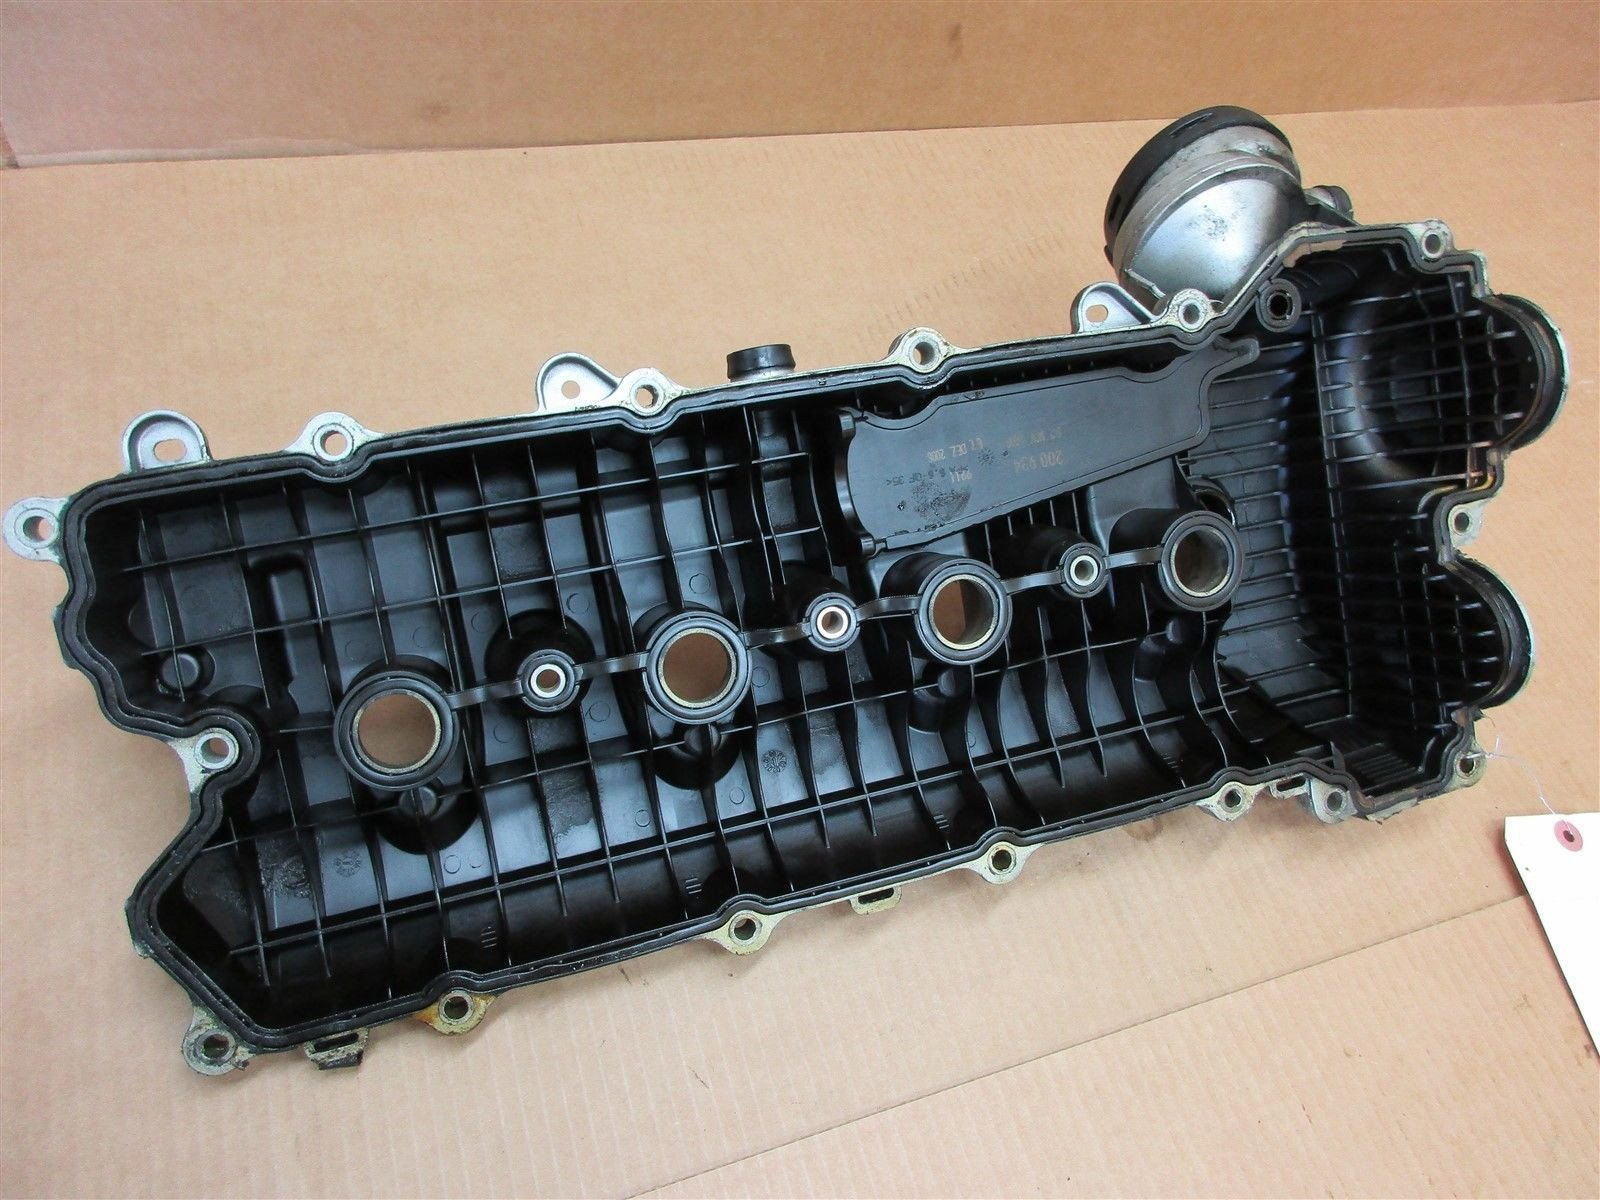 04 Cayenne Turbo Porsche Engine 4.5 L CYLINDER HEAD VALVE COVER CAMSHAFT 256,206